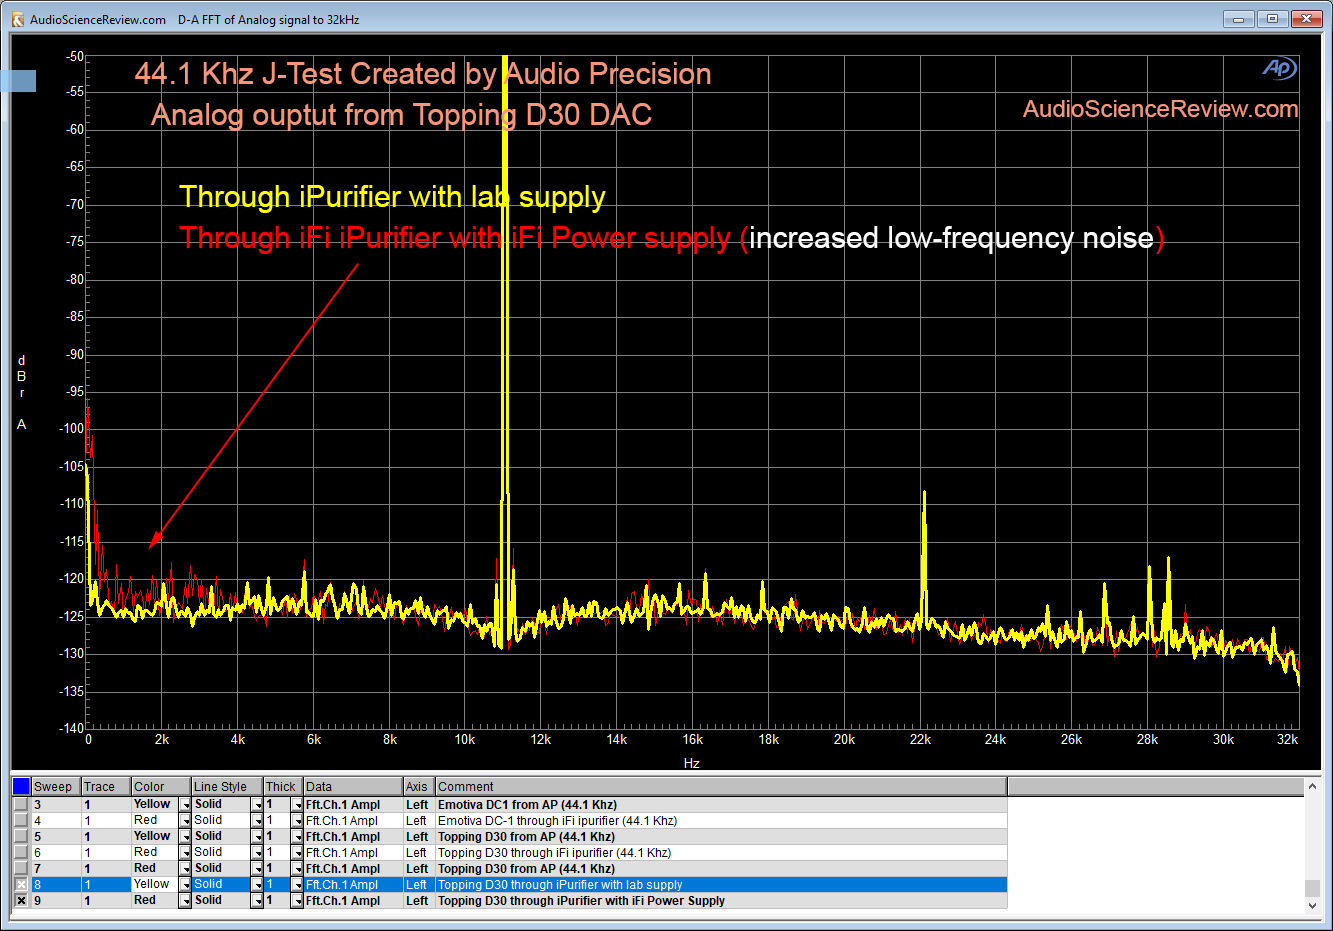 AP J-Test 44100 Topping D30 DAC with iFi iPurifier lab supply test.png